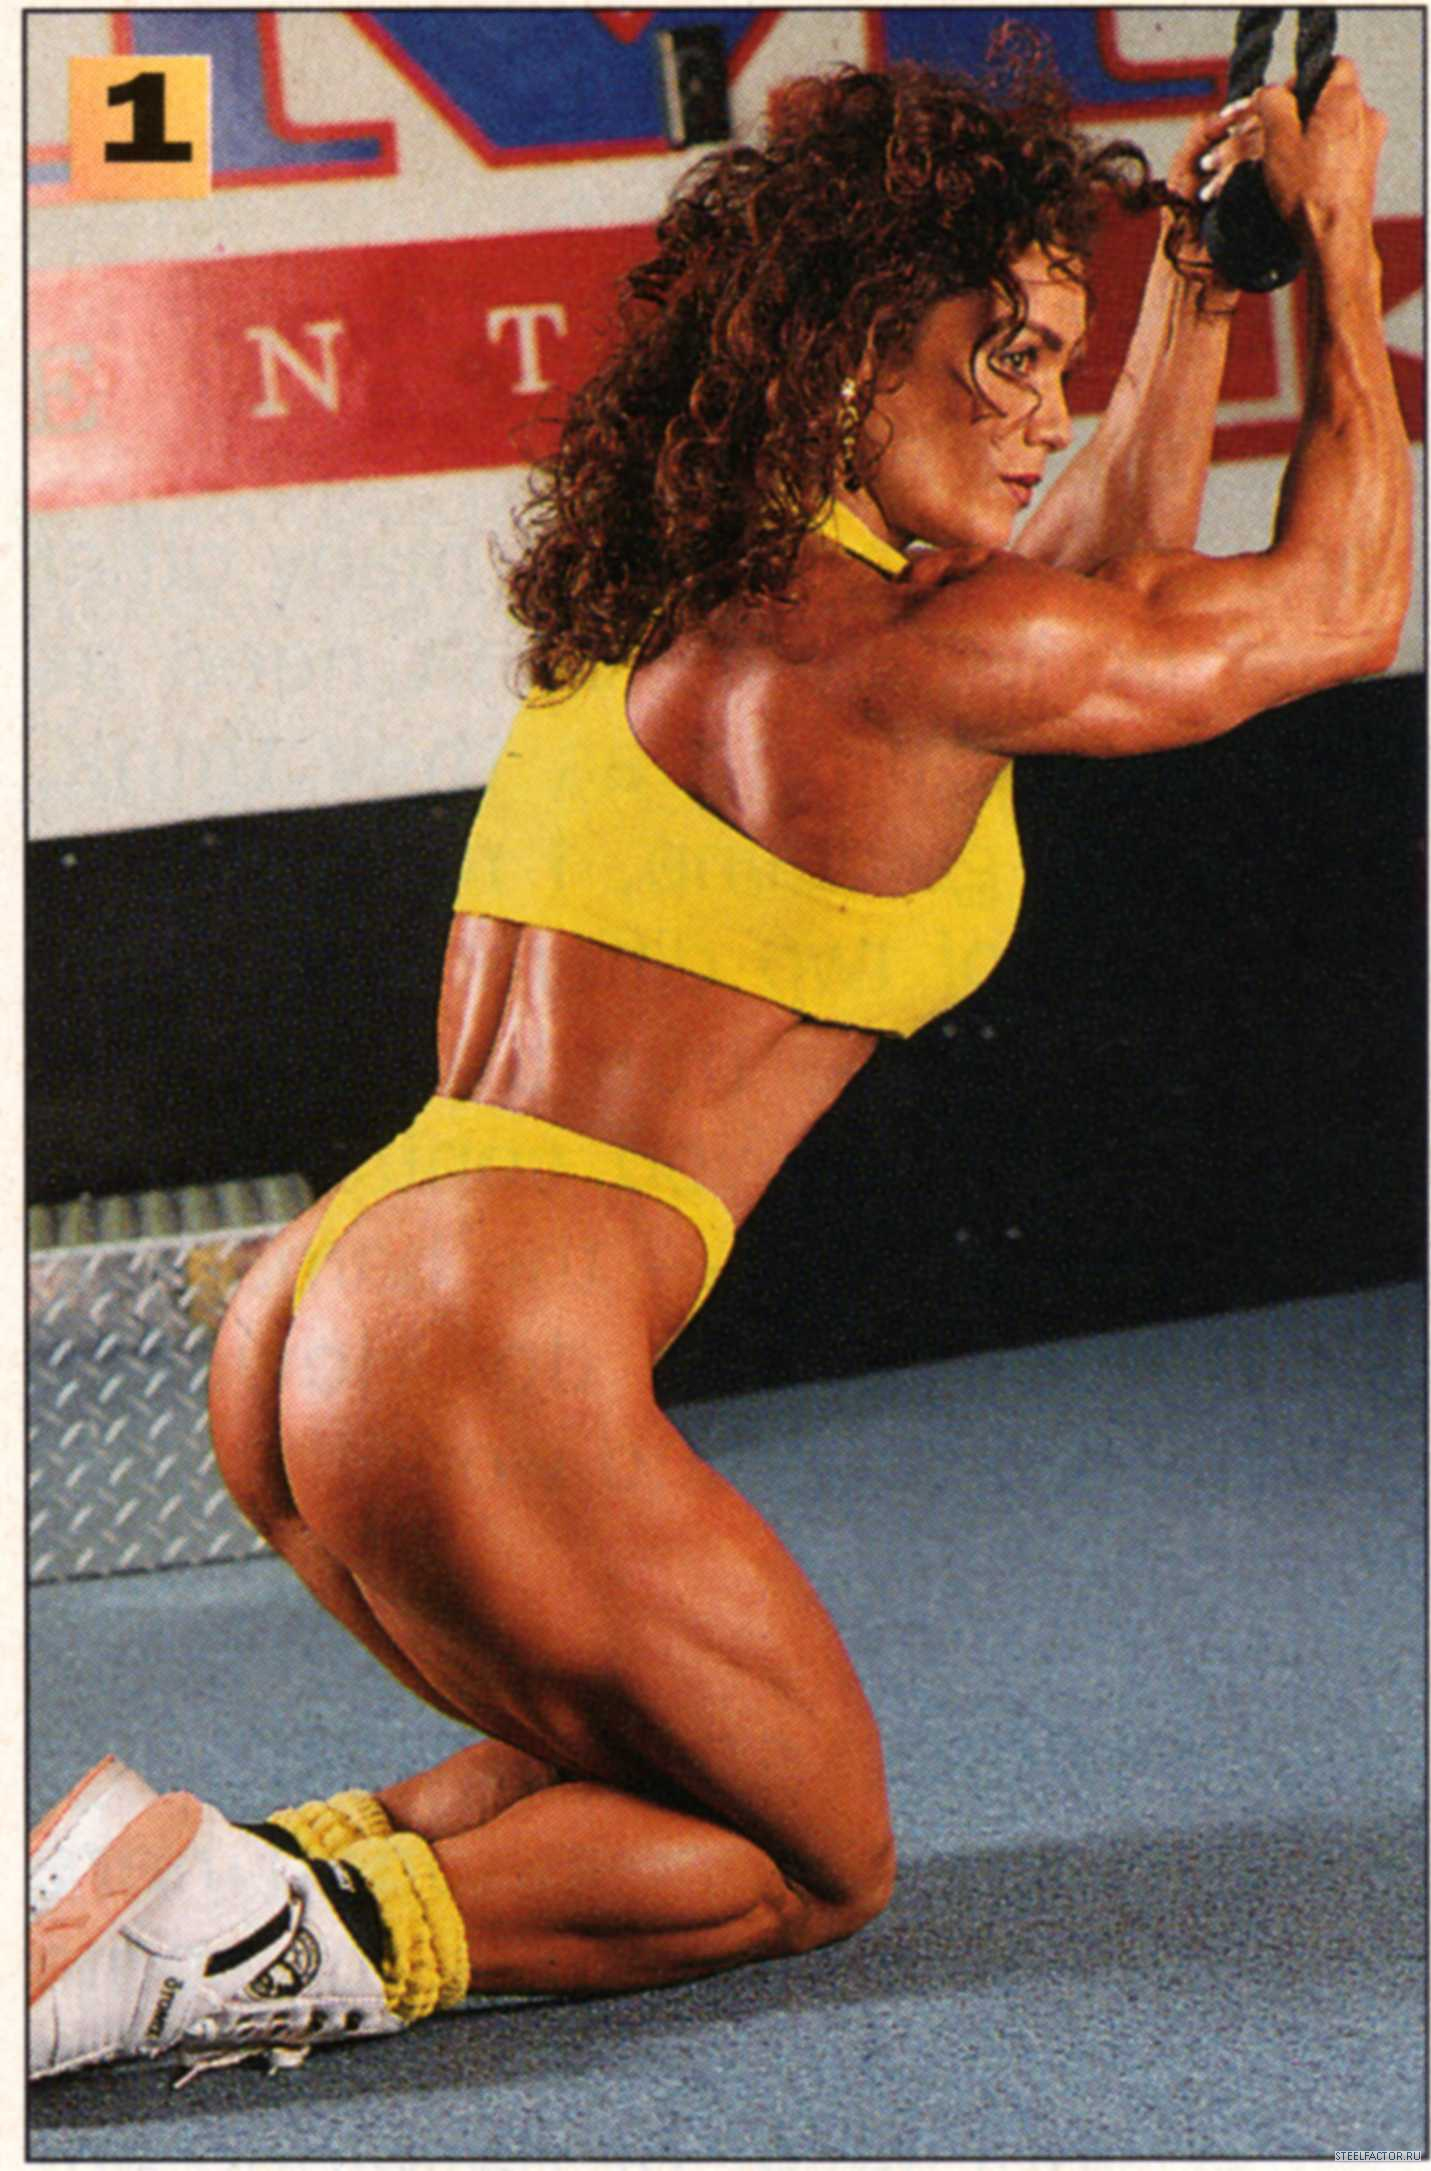 Muscle woman szex picture exposed image